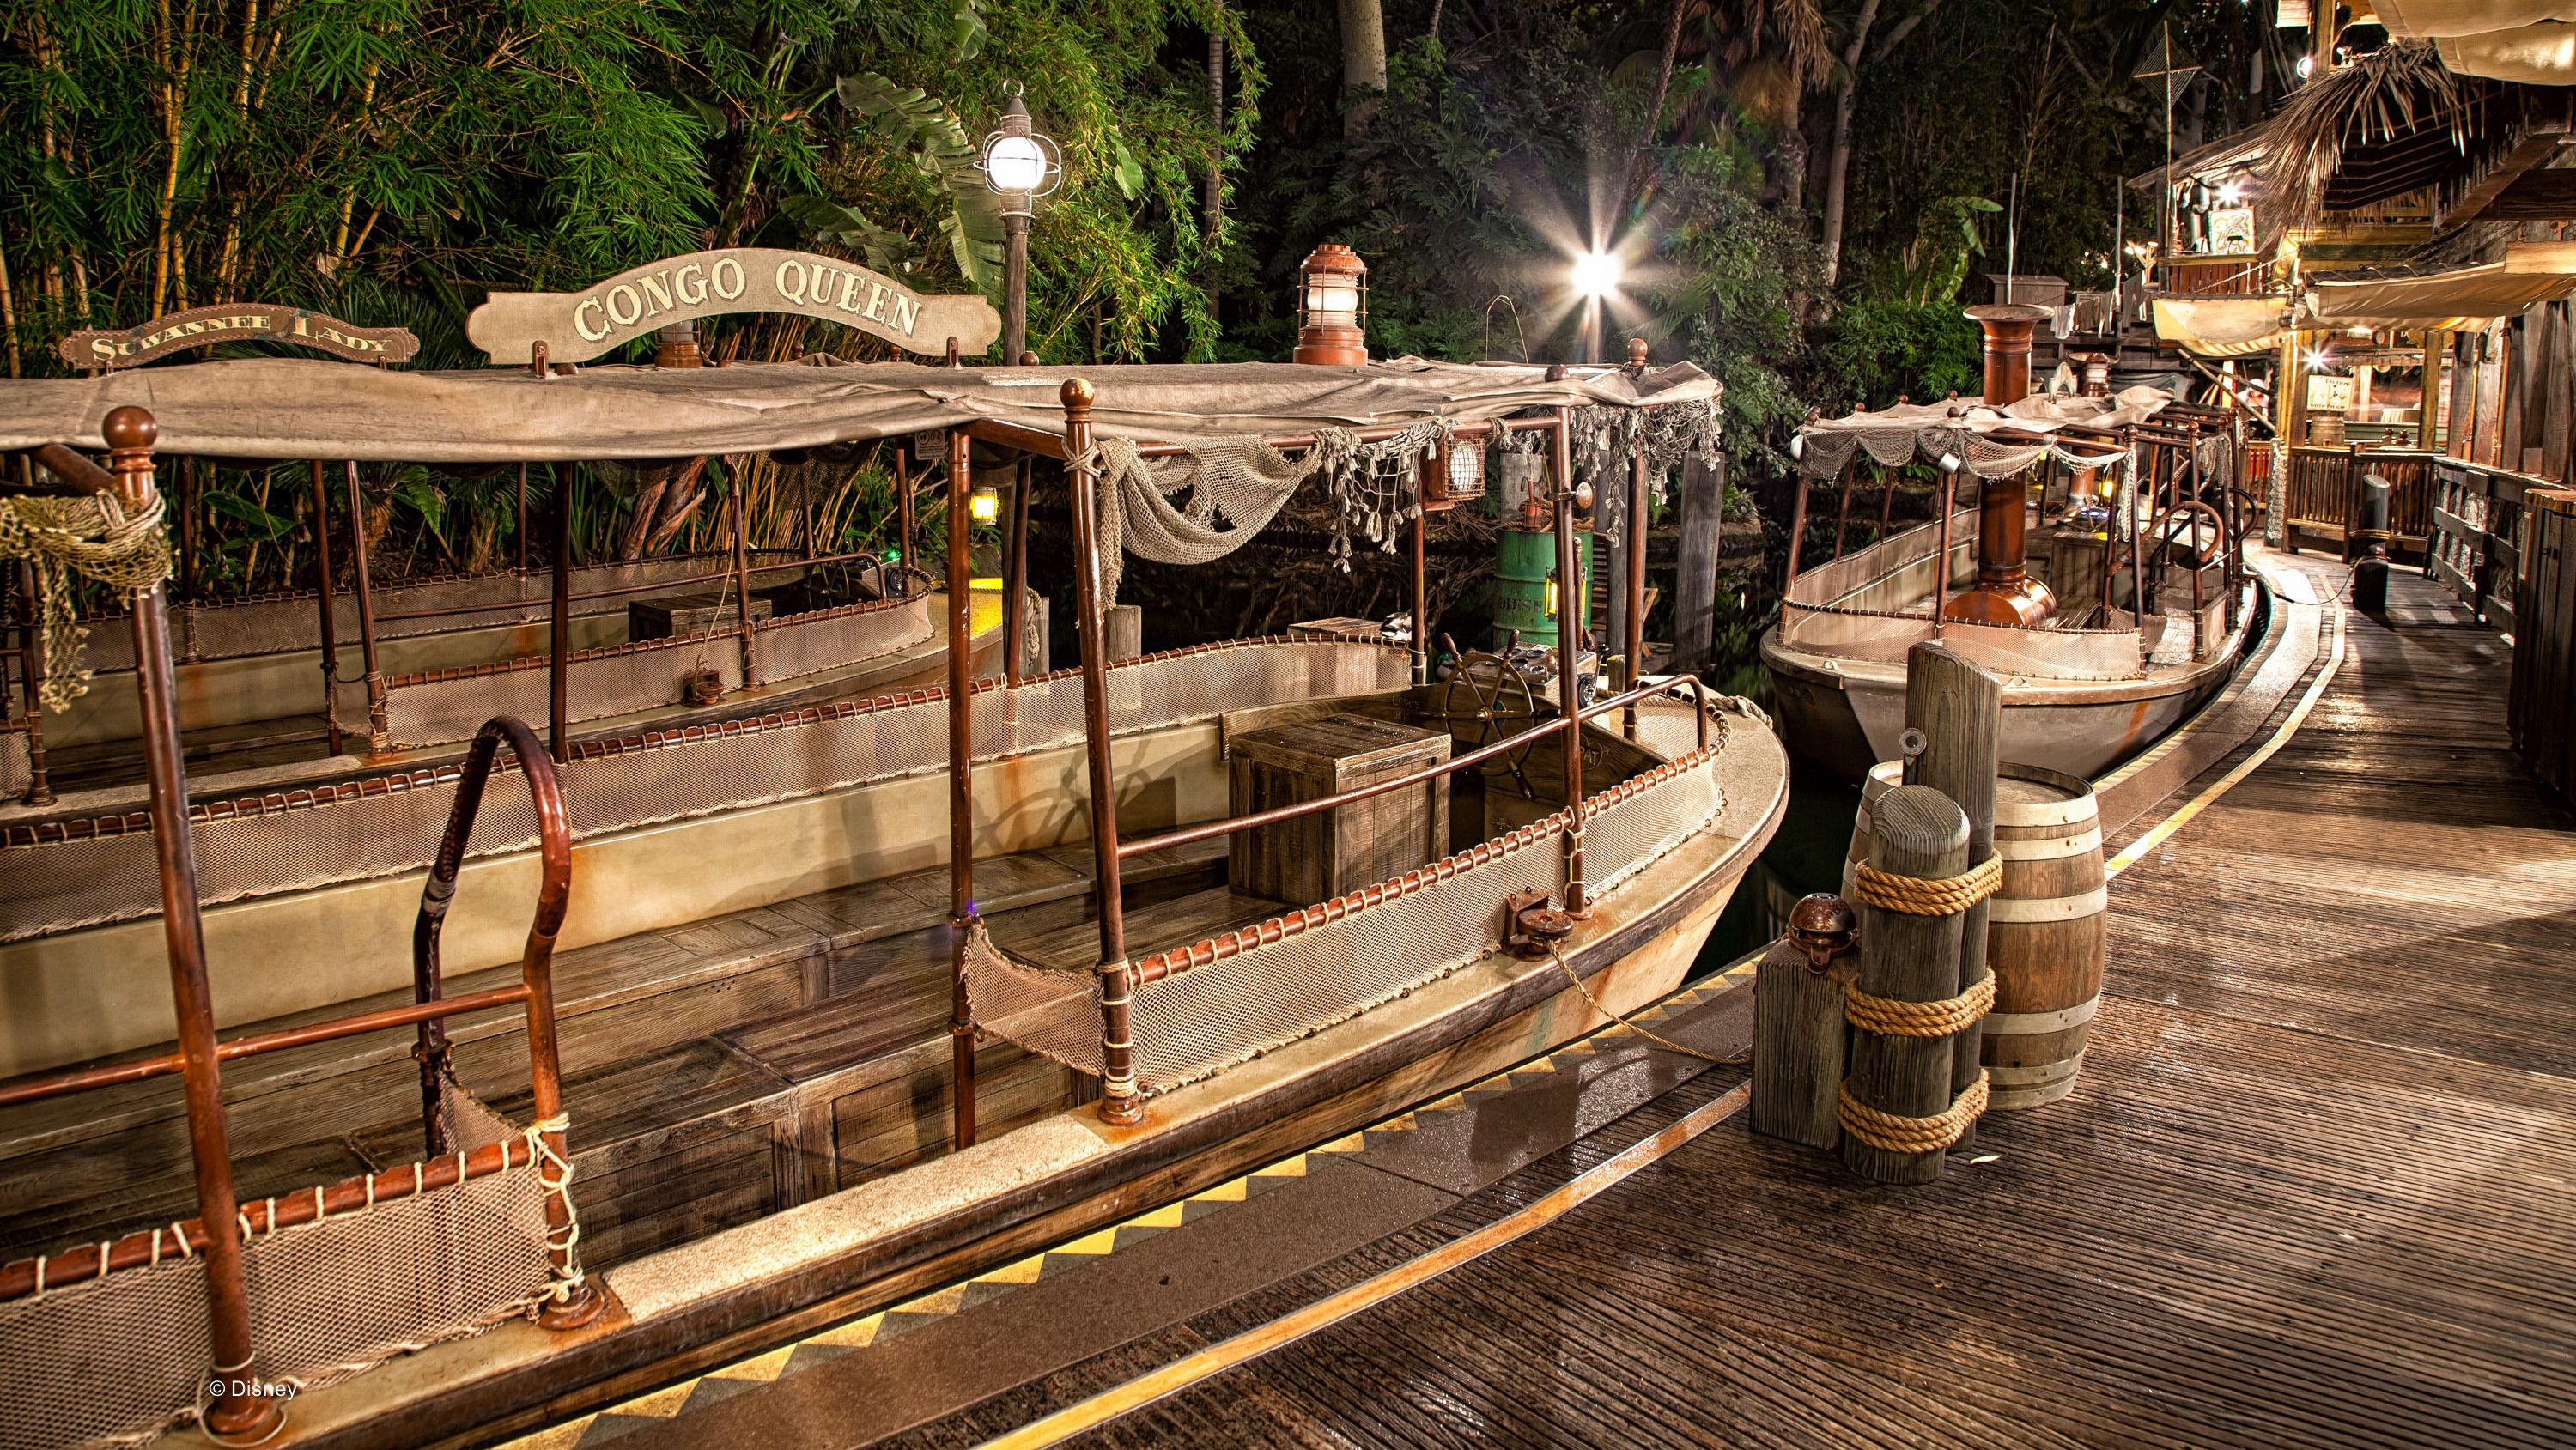 Image of the boat dock and boats from the Jungle Cruise ride.